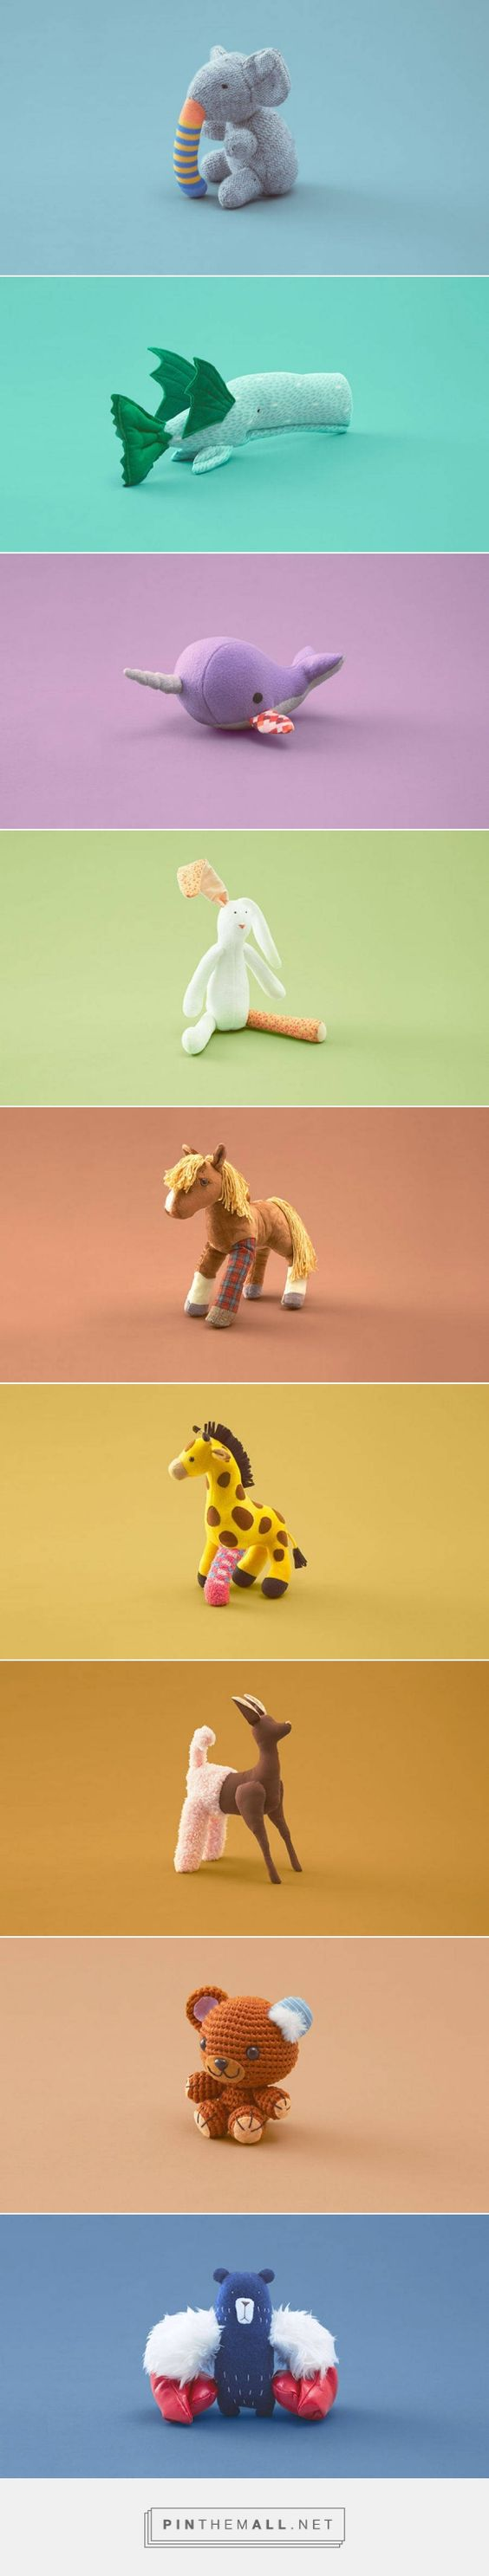 Second Life Toys Campaign for Organ Donation – Fubiz Media - created via https://pinthemall.net